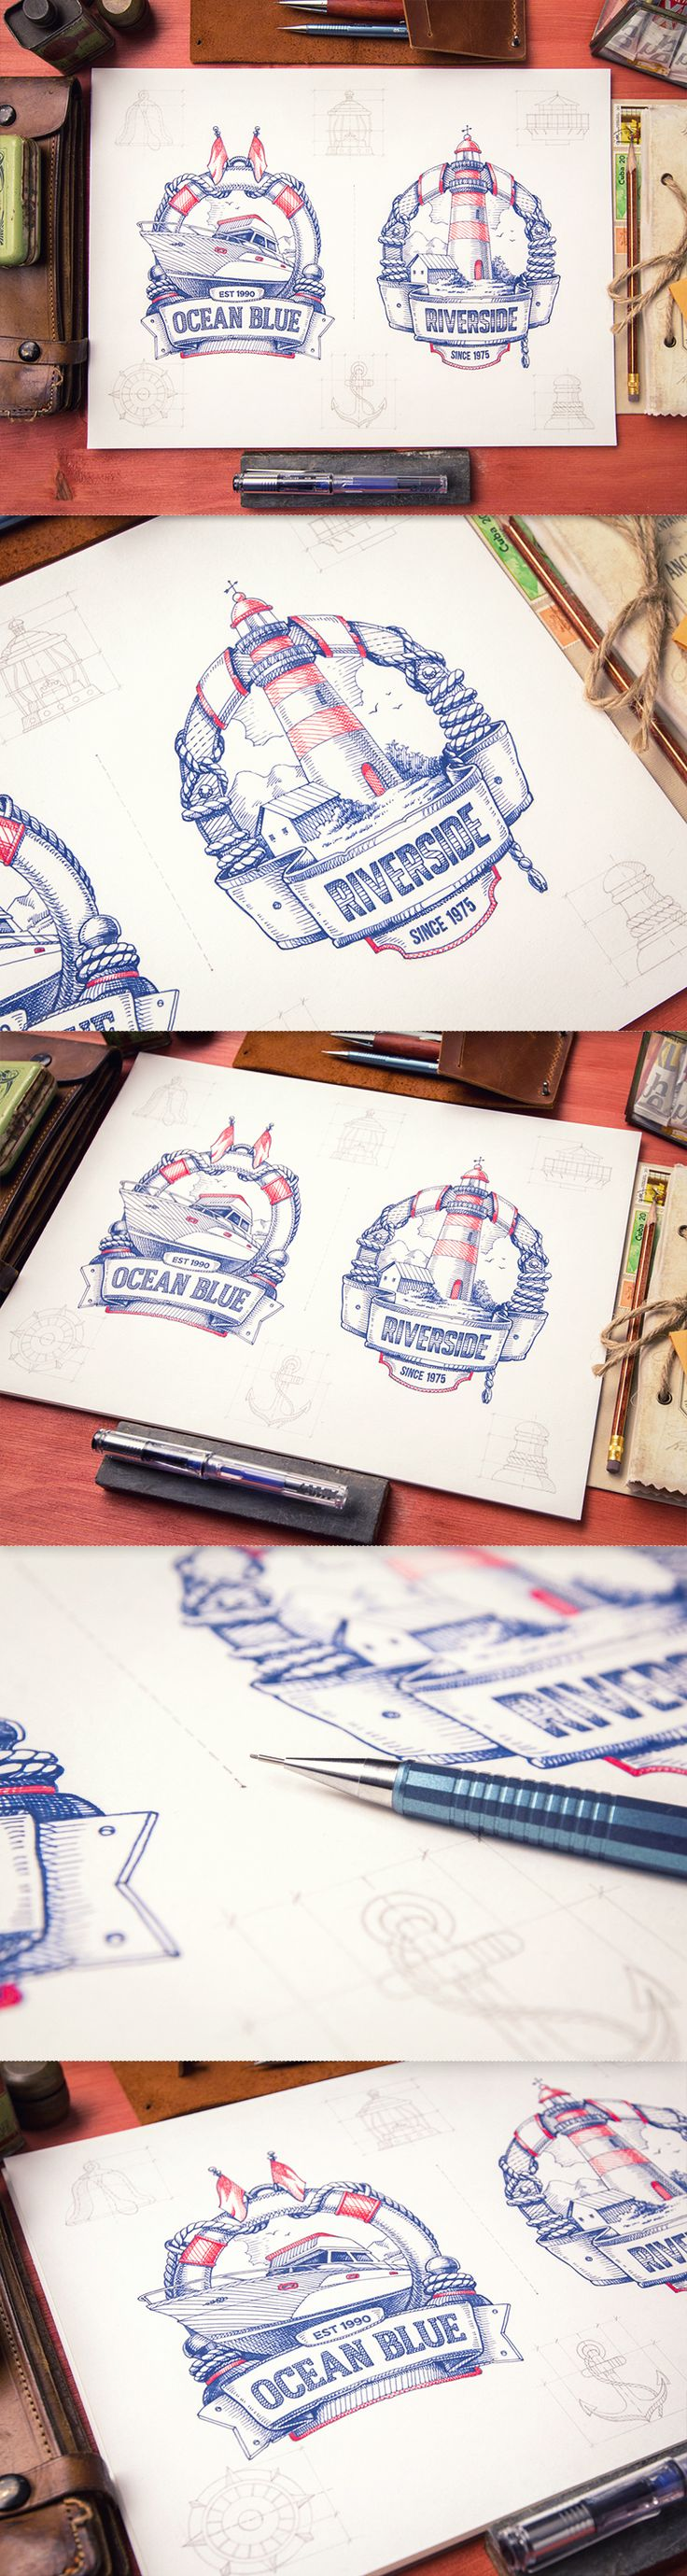 Mike | Creative Mints  This logo has pretty old school illustration and type that always stays classic and lasting.